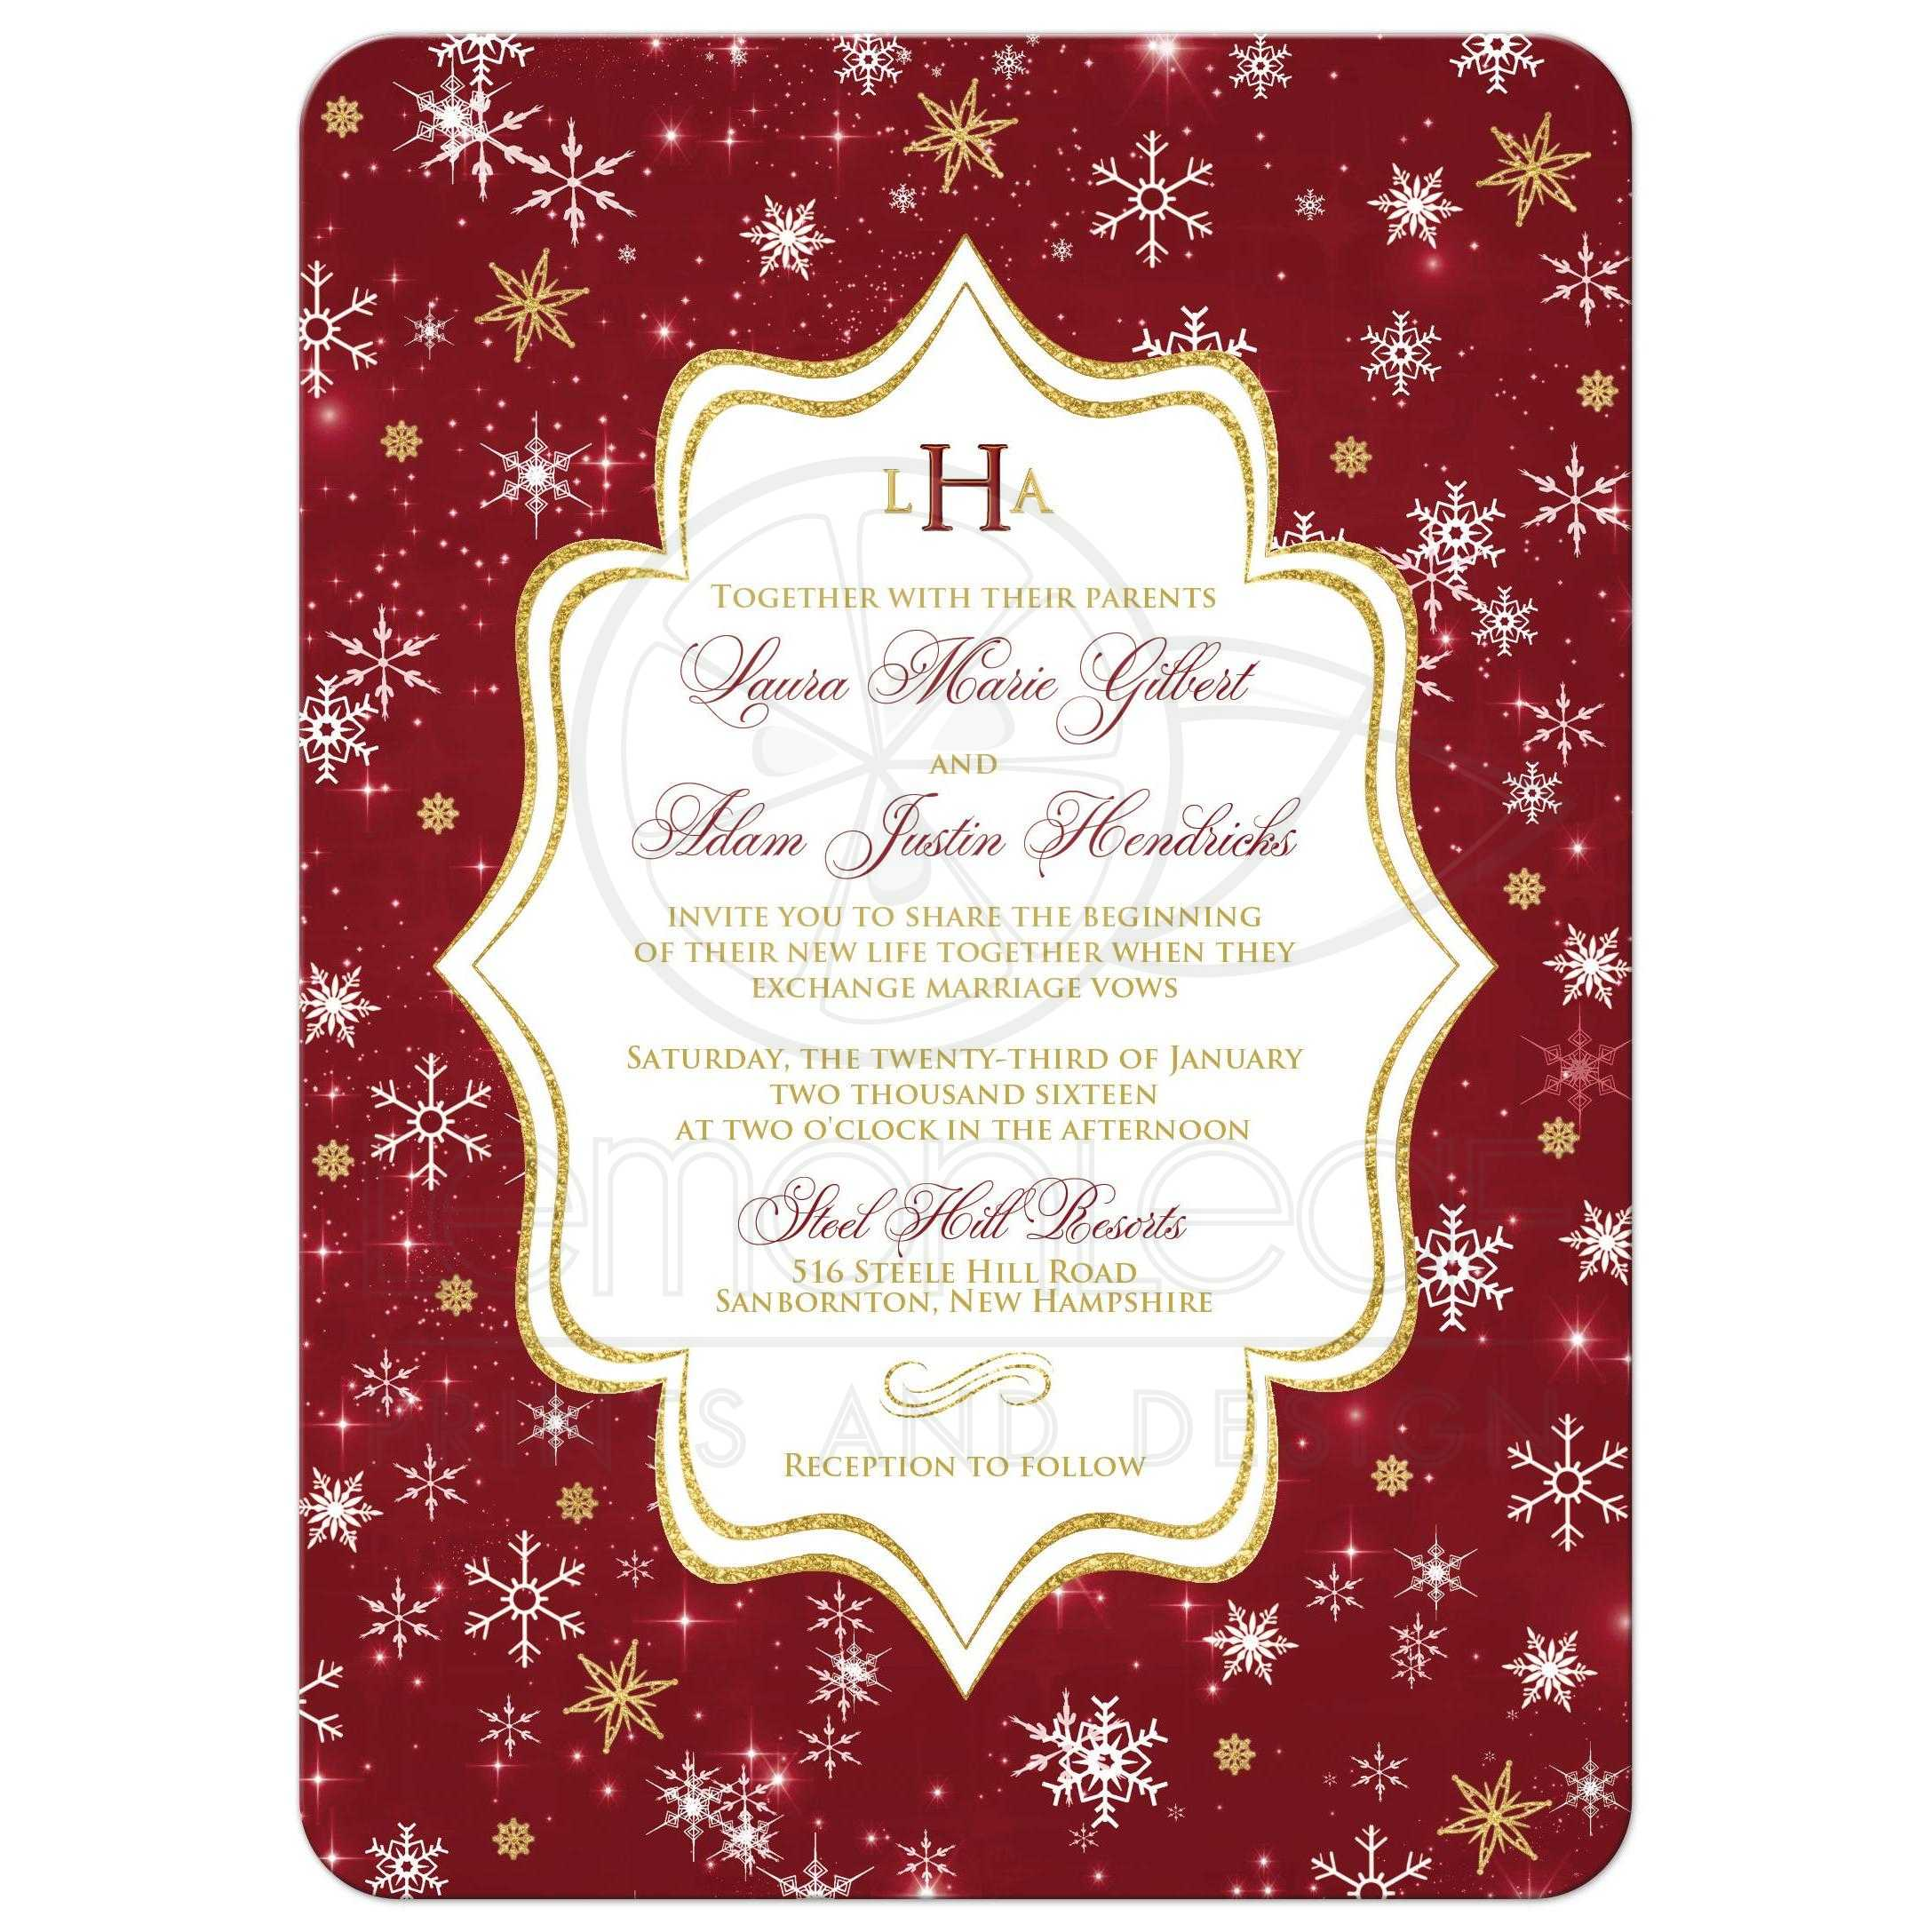 Monogrammed Wedding Invitation Cranberry Gold White